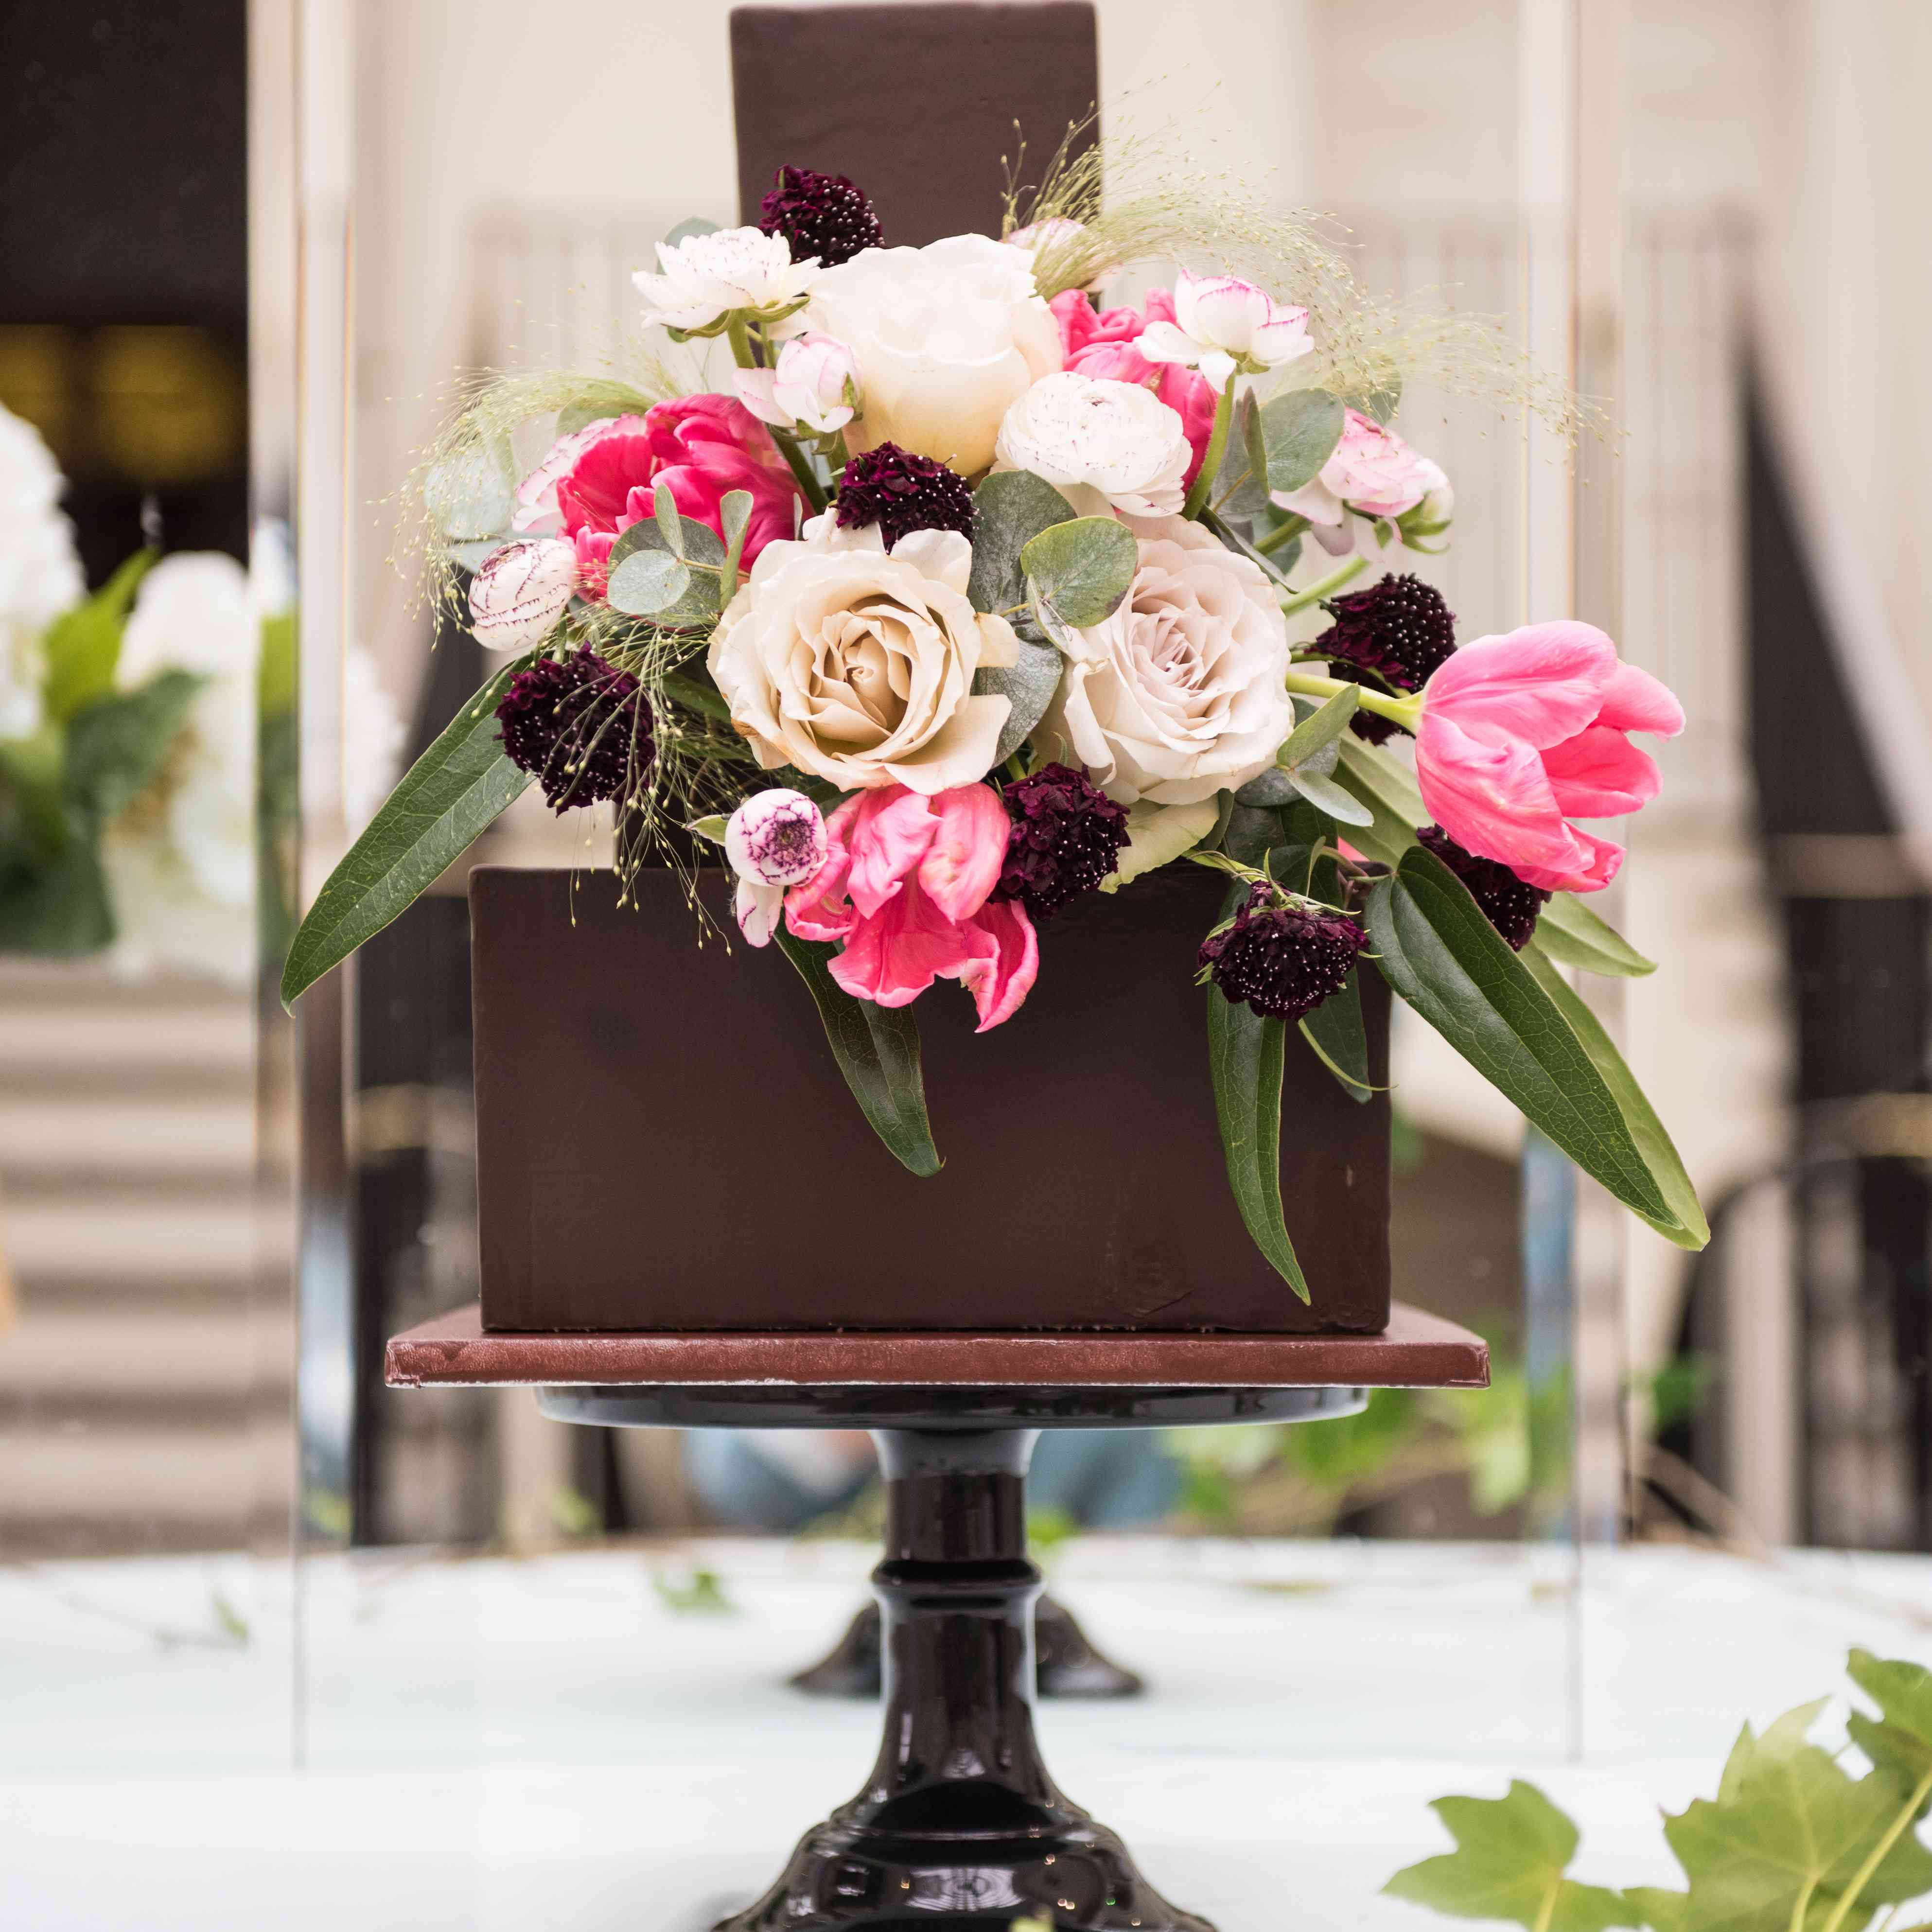 Chocolate cake with florals